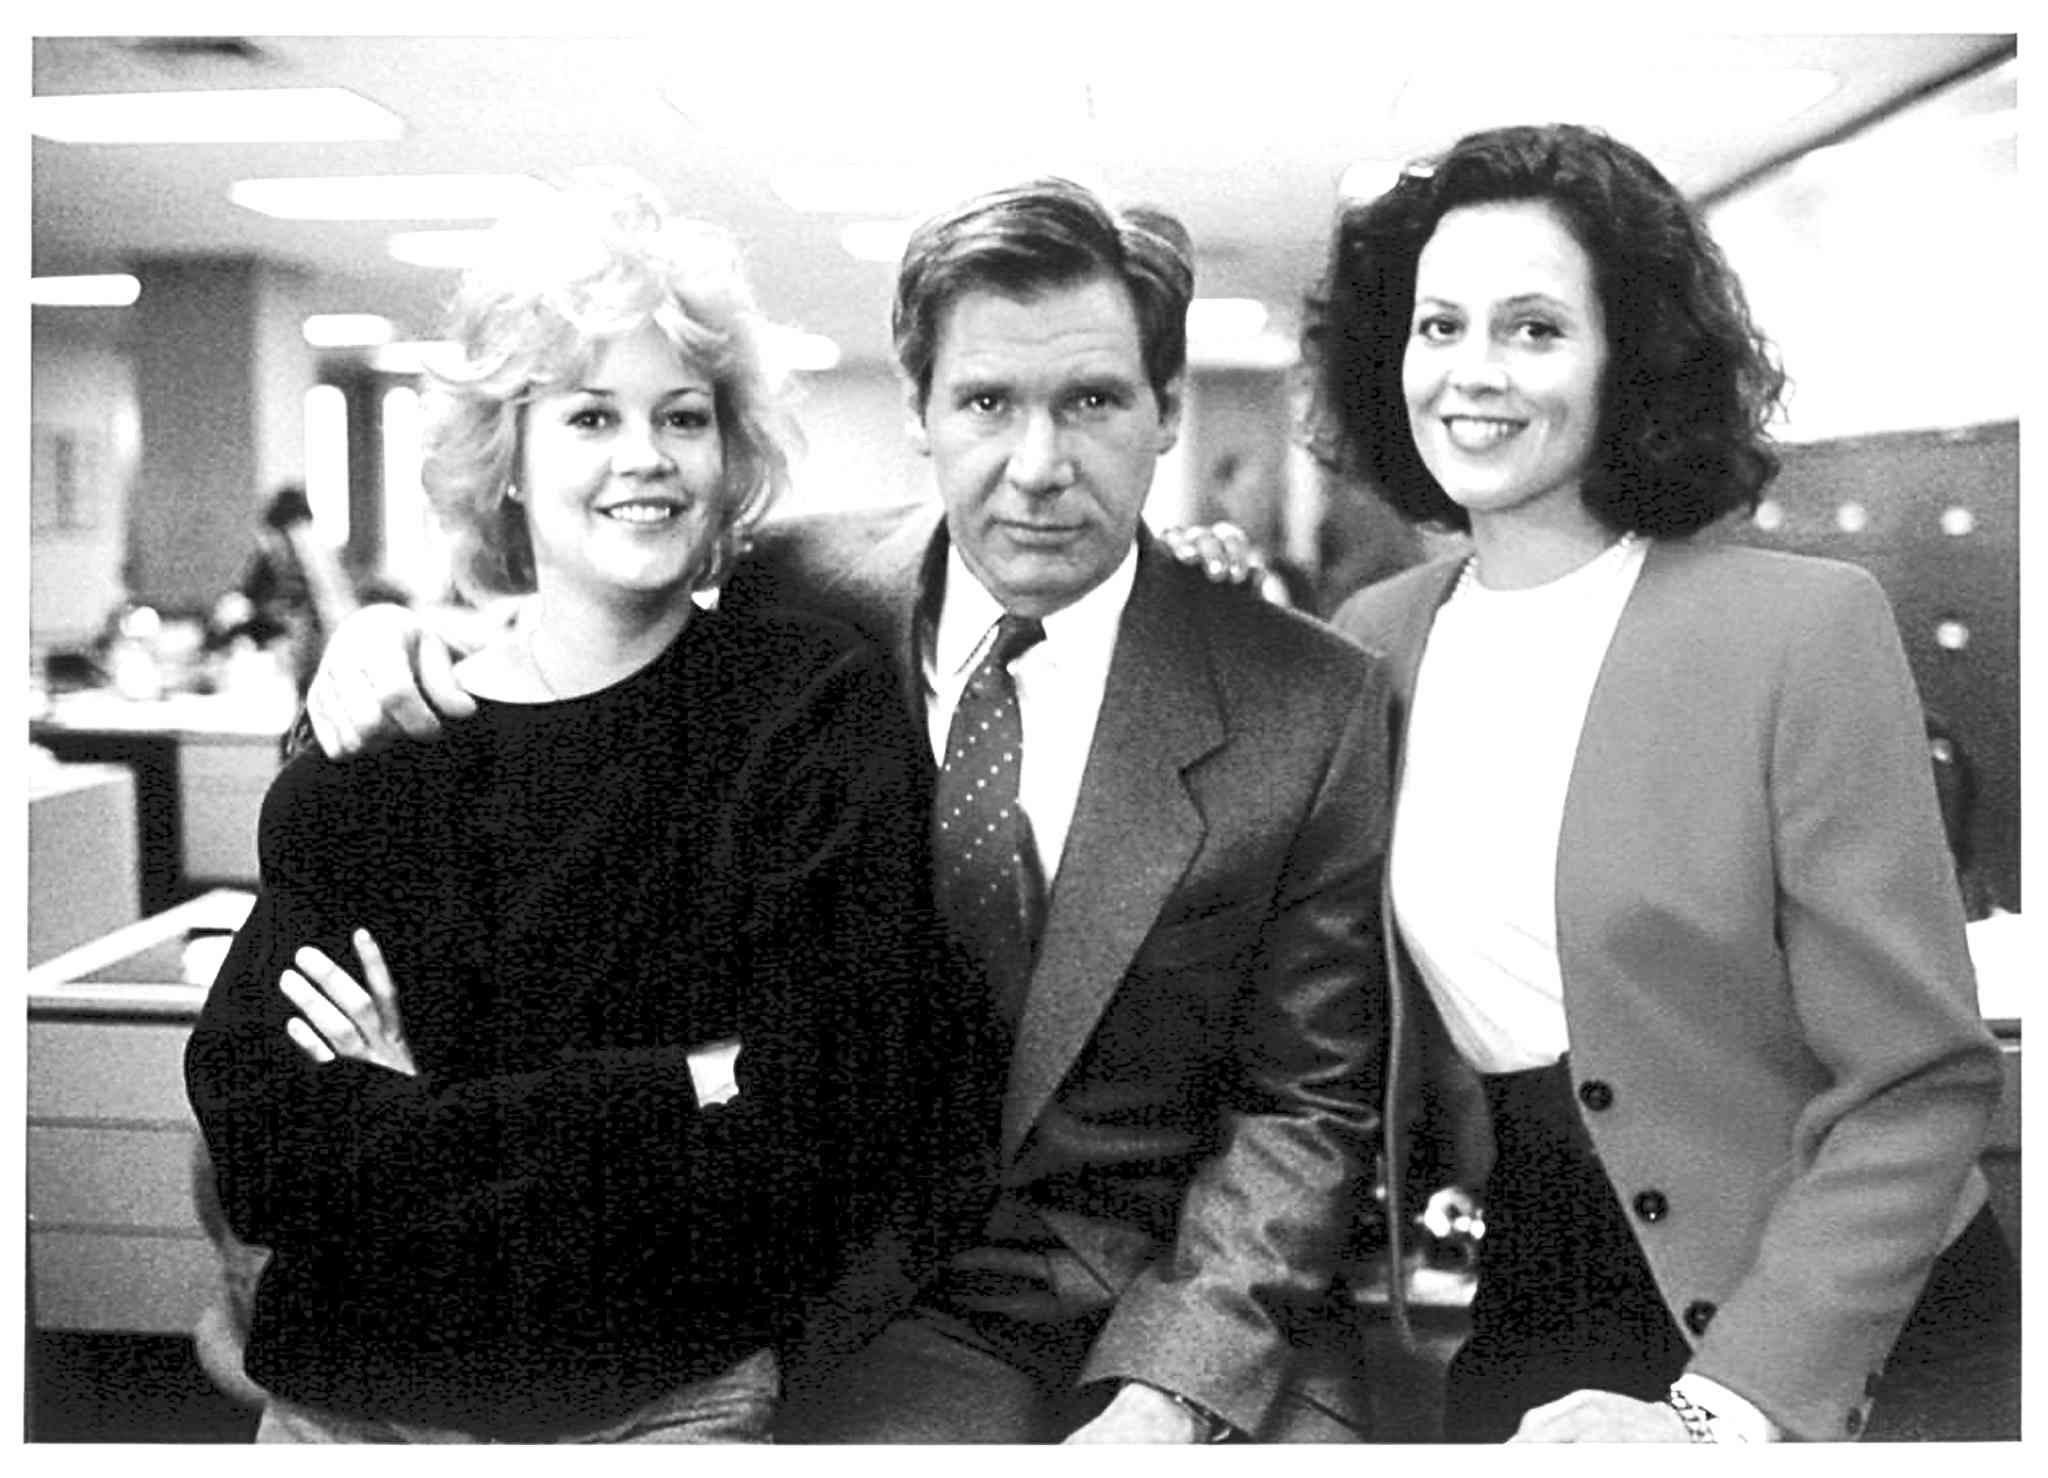 The 1988 blockbuster Working Girl, starring (from left) Melanie Griffith, Harrison Ford and Sigourney Weaver, depicted the glass ceiling. Many feel little has changed.